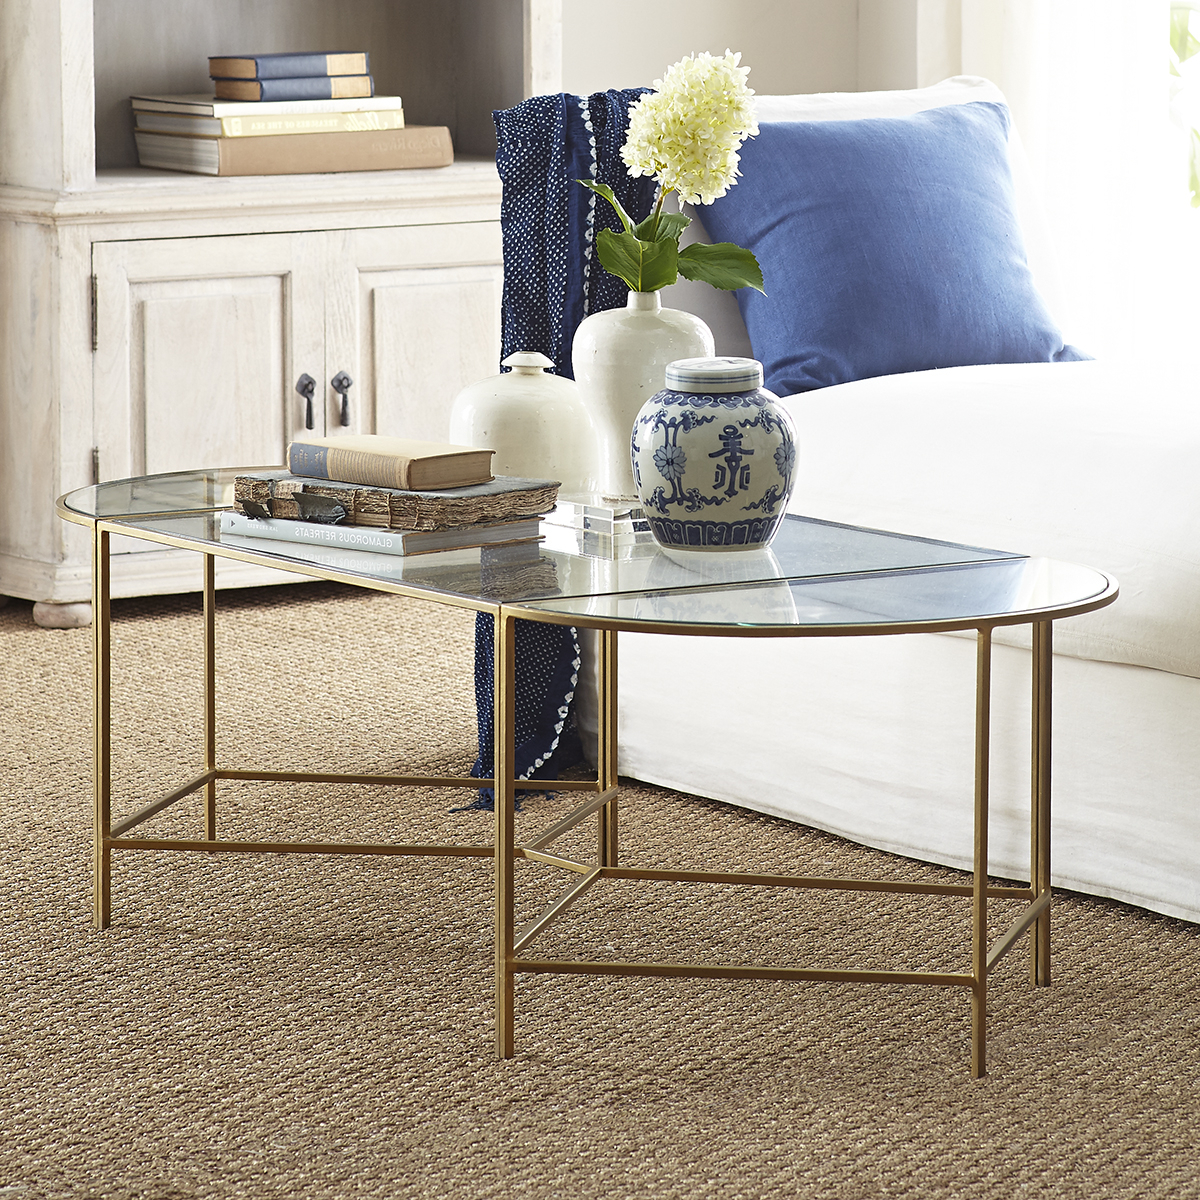 Wisteria Pertaining To 2019 Broll Coffee Tables (View 20 of 20)